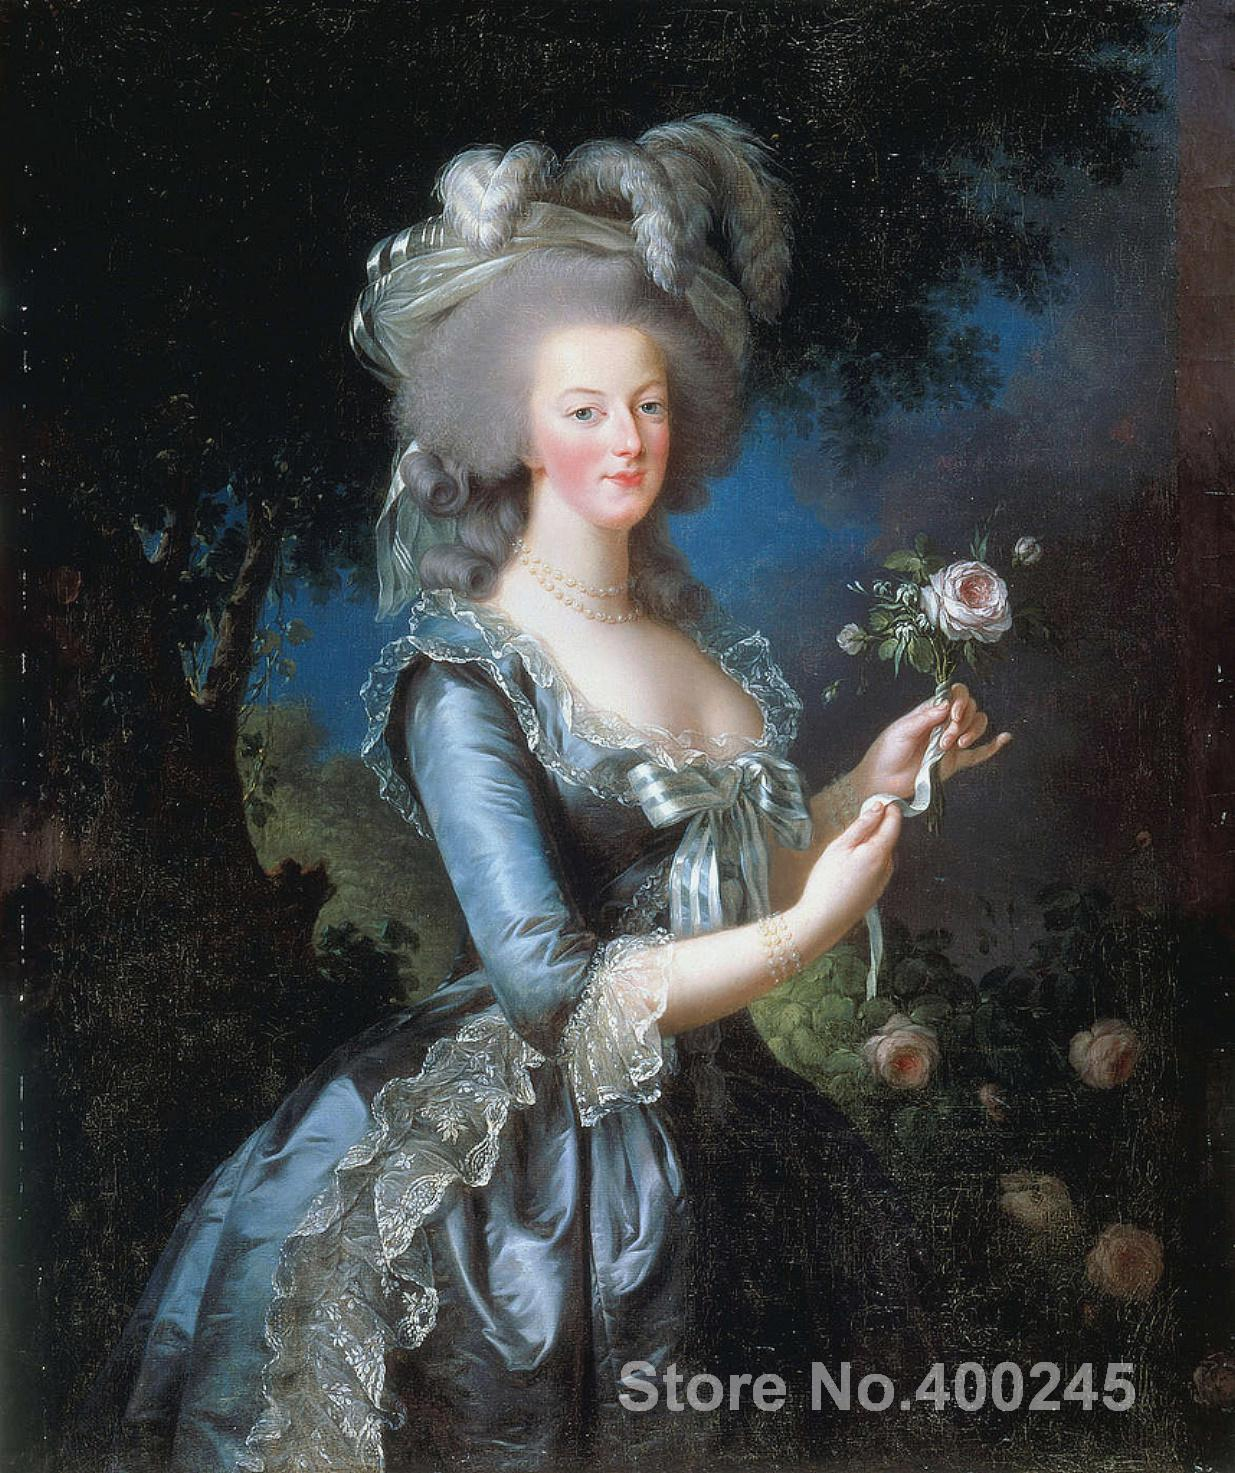 Beautiful woman Portrait painting Marie Antoinette with the Rose by Elisabeth Vigee Lebrun High quality Handmade Wall decorBeautiful woman Portrait painting Marie Antoinette with the Rose by Elisabeth Vigee Lebrun High quality Handmade Wall decor